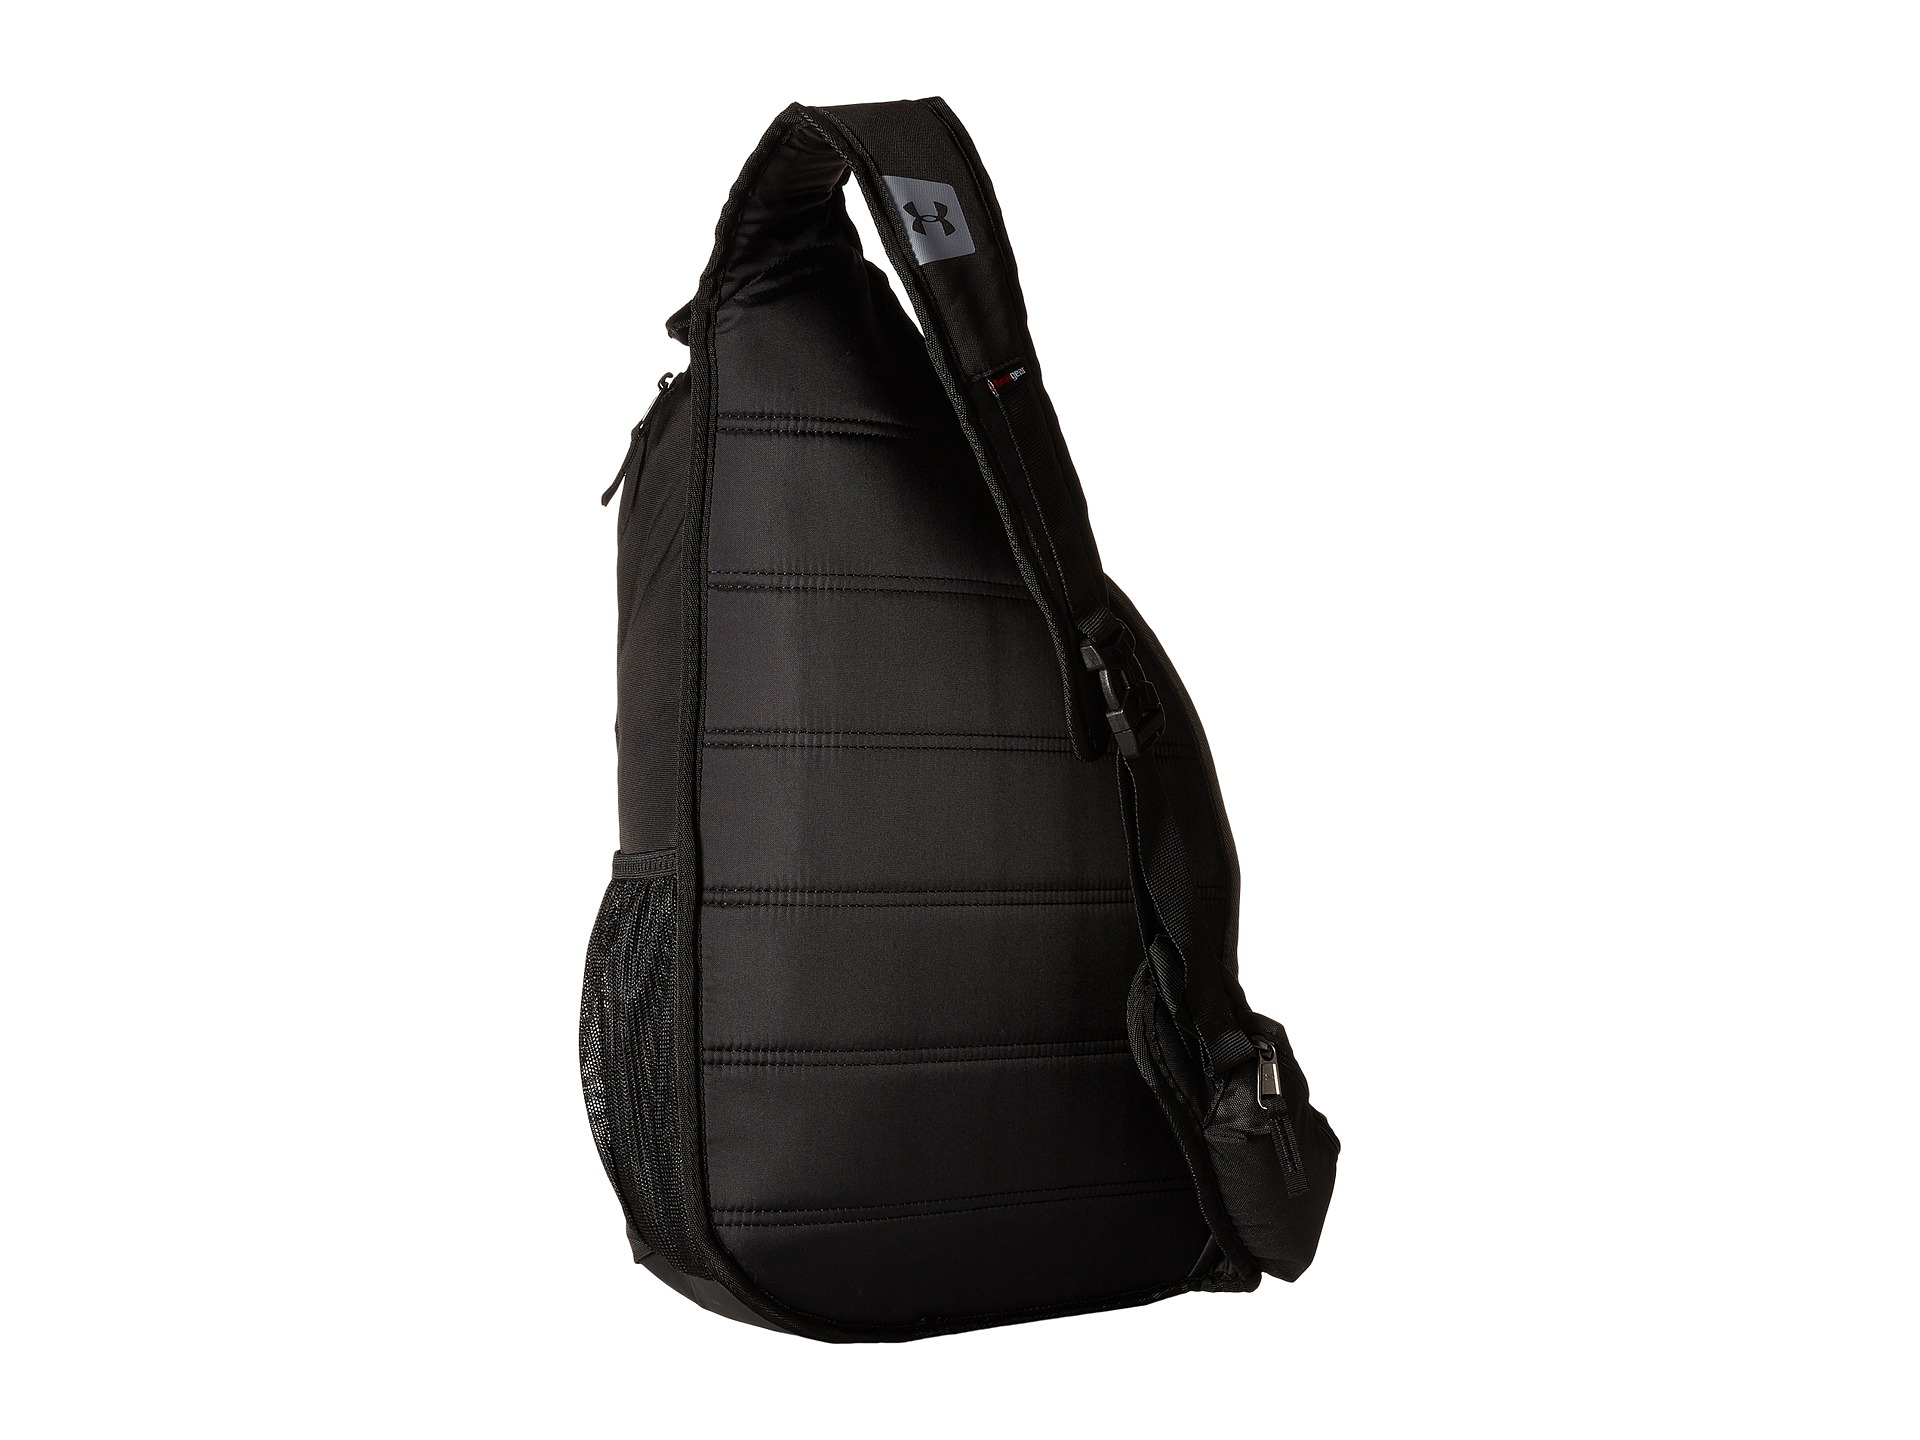 under armor sling backpack cheap   OFF38% The Largest Catalog Discounts 4f58dcc55c9a8